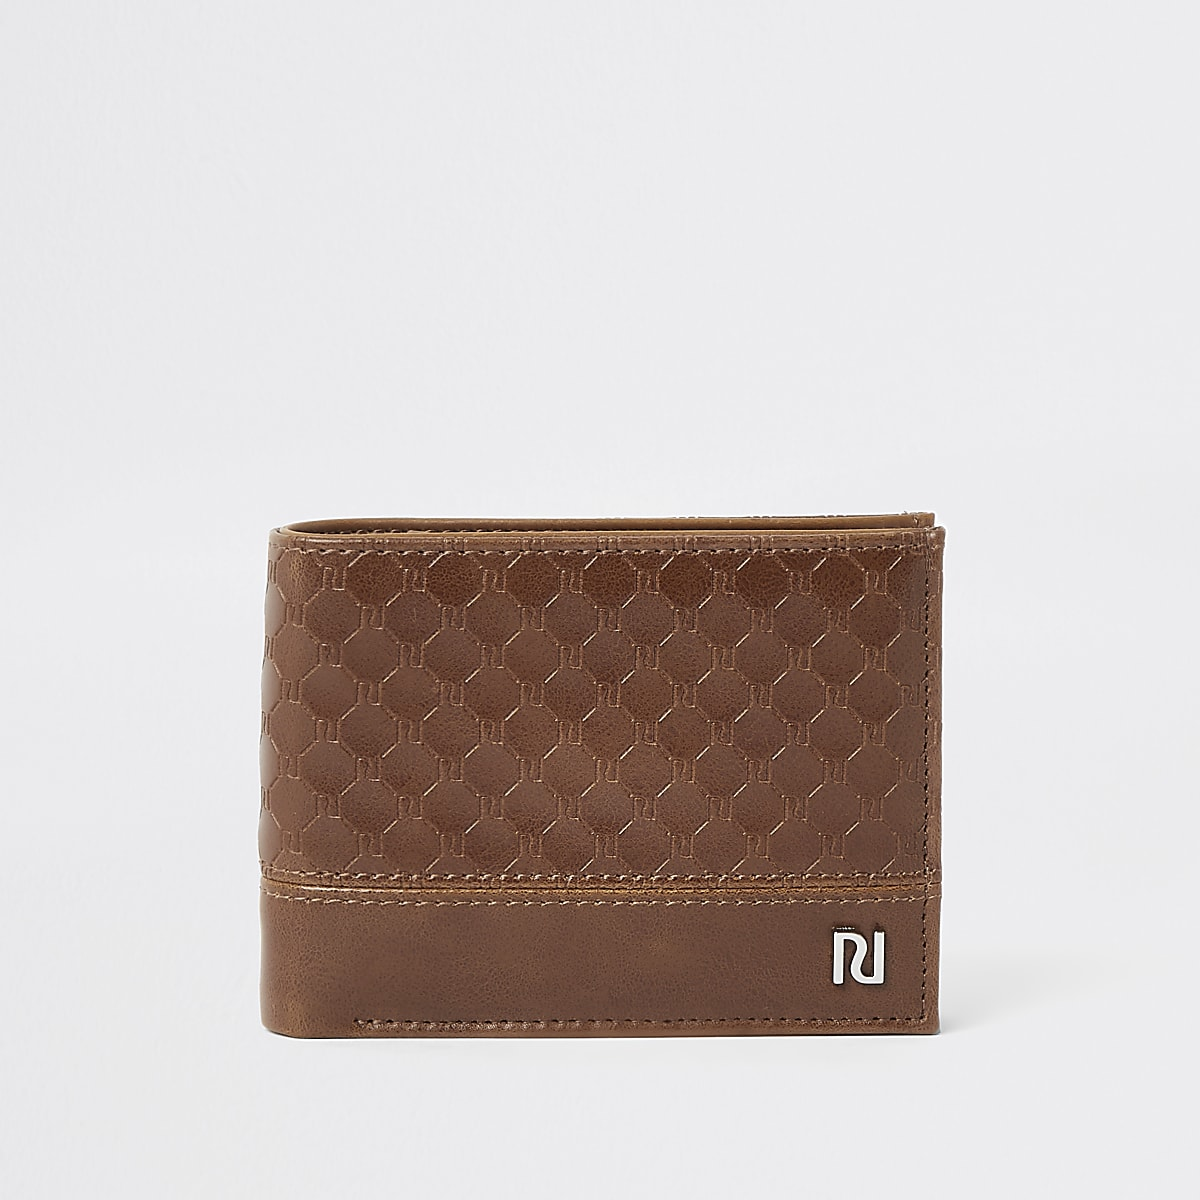 Tan RI monogram wallet